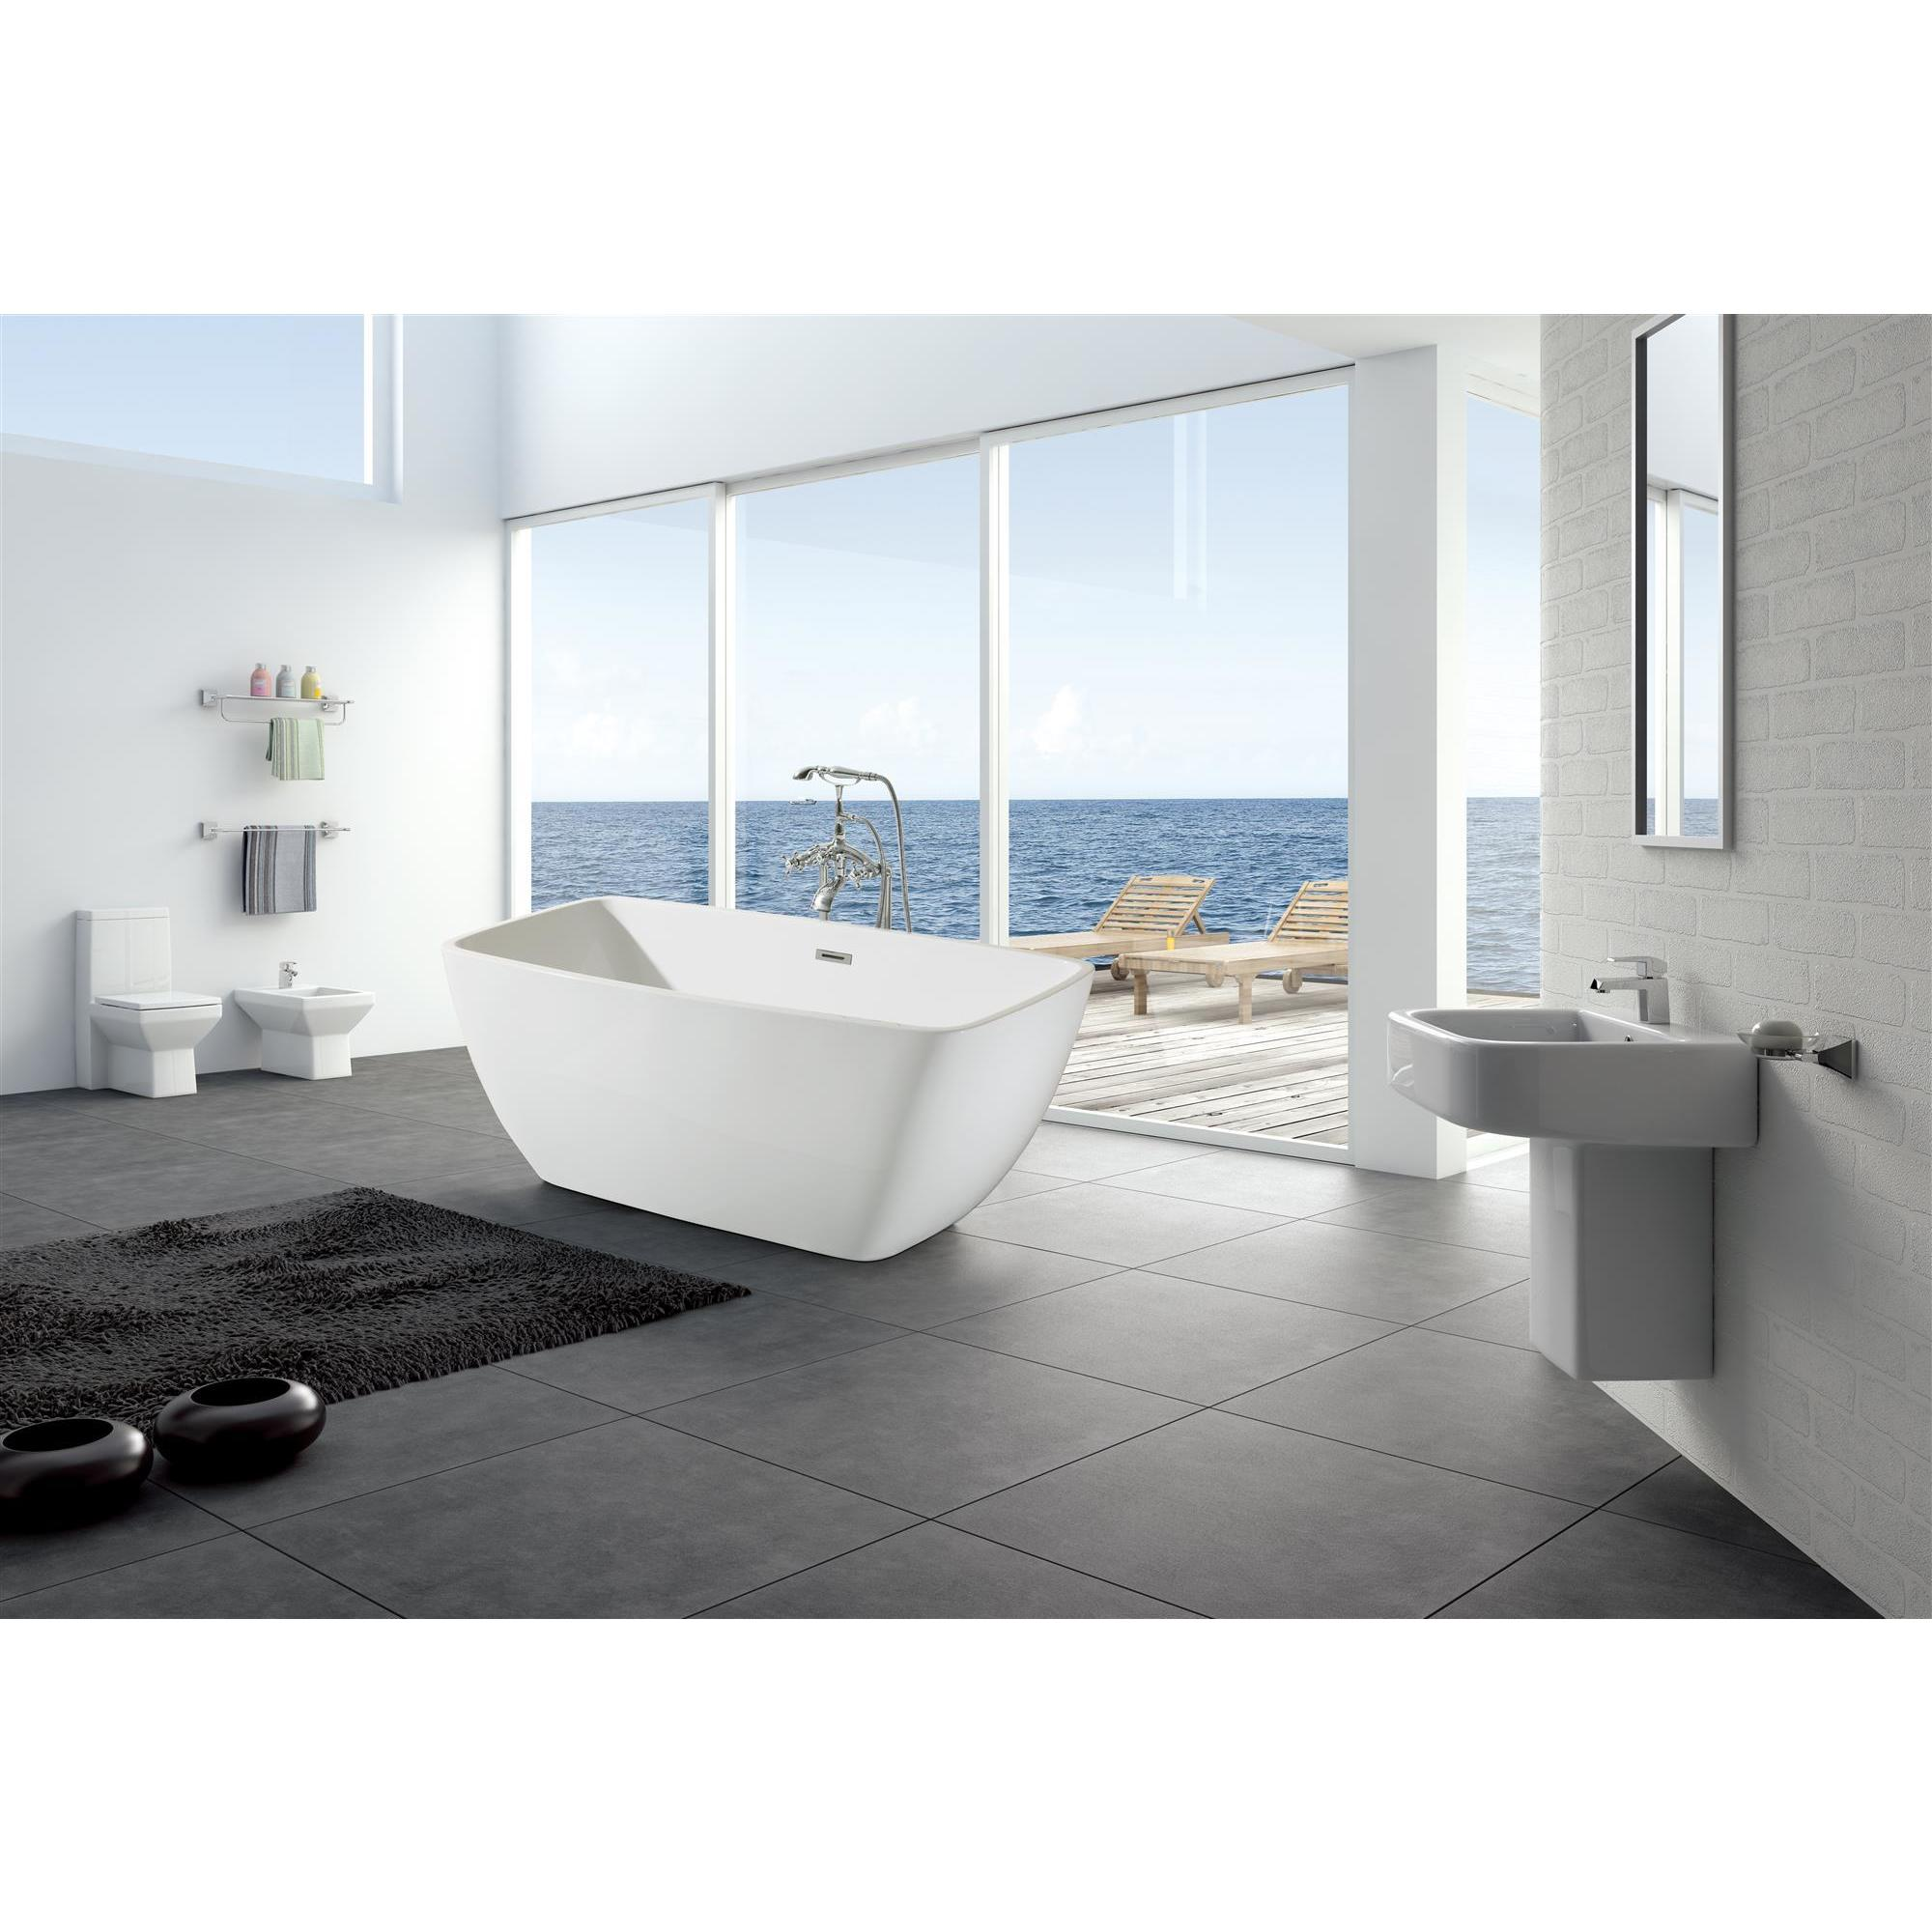 Charmant Shop Ariel Platinum Aurora White Acrylic 63 Inch Rectangular Bathtub   Free  Shipping Today   Overstock.com   16604158